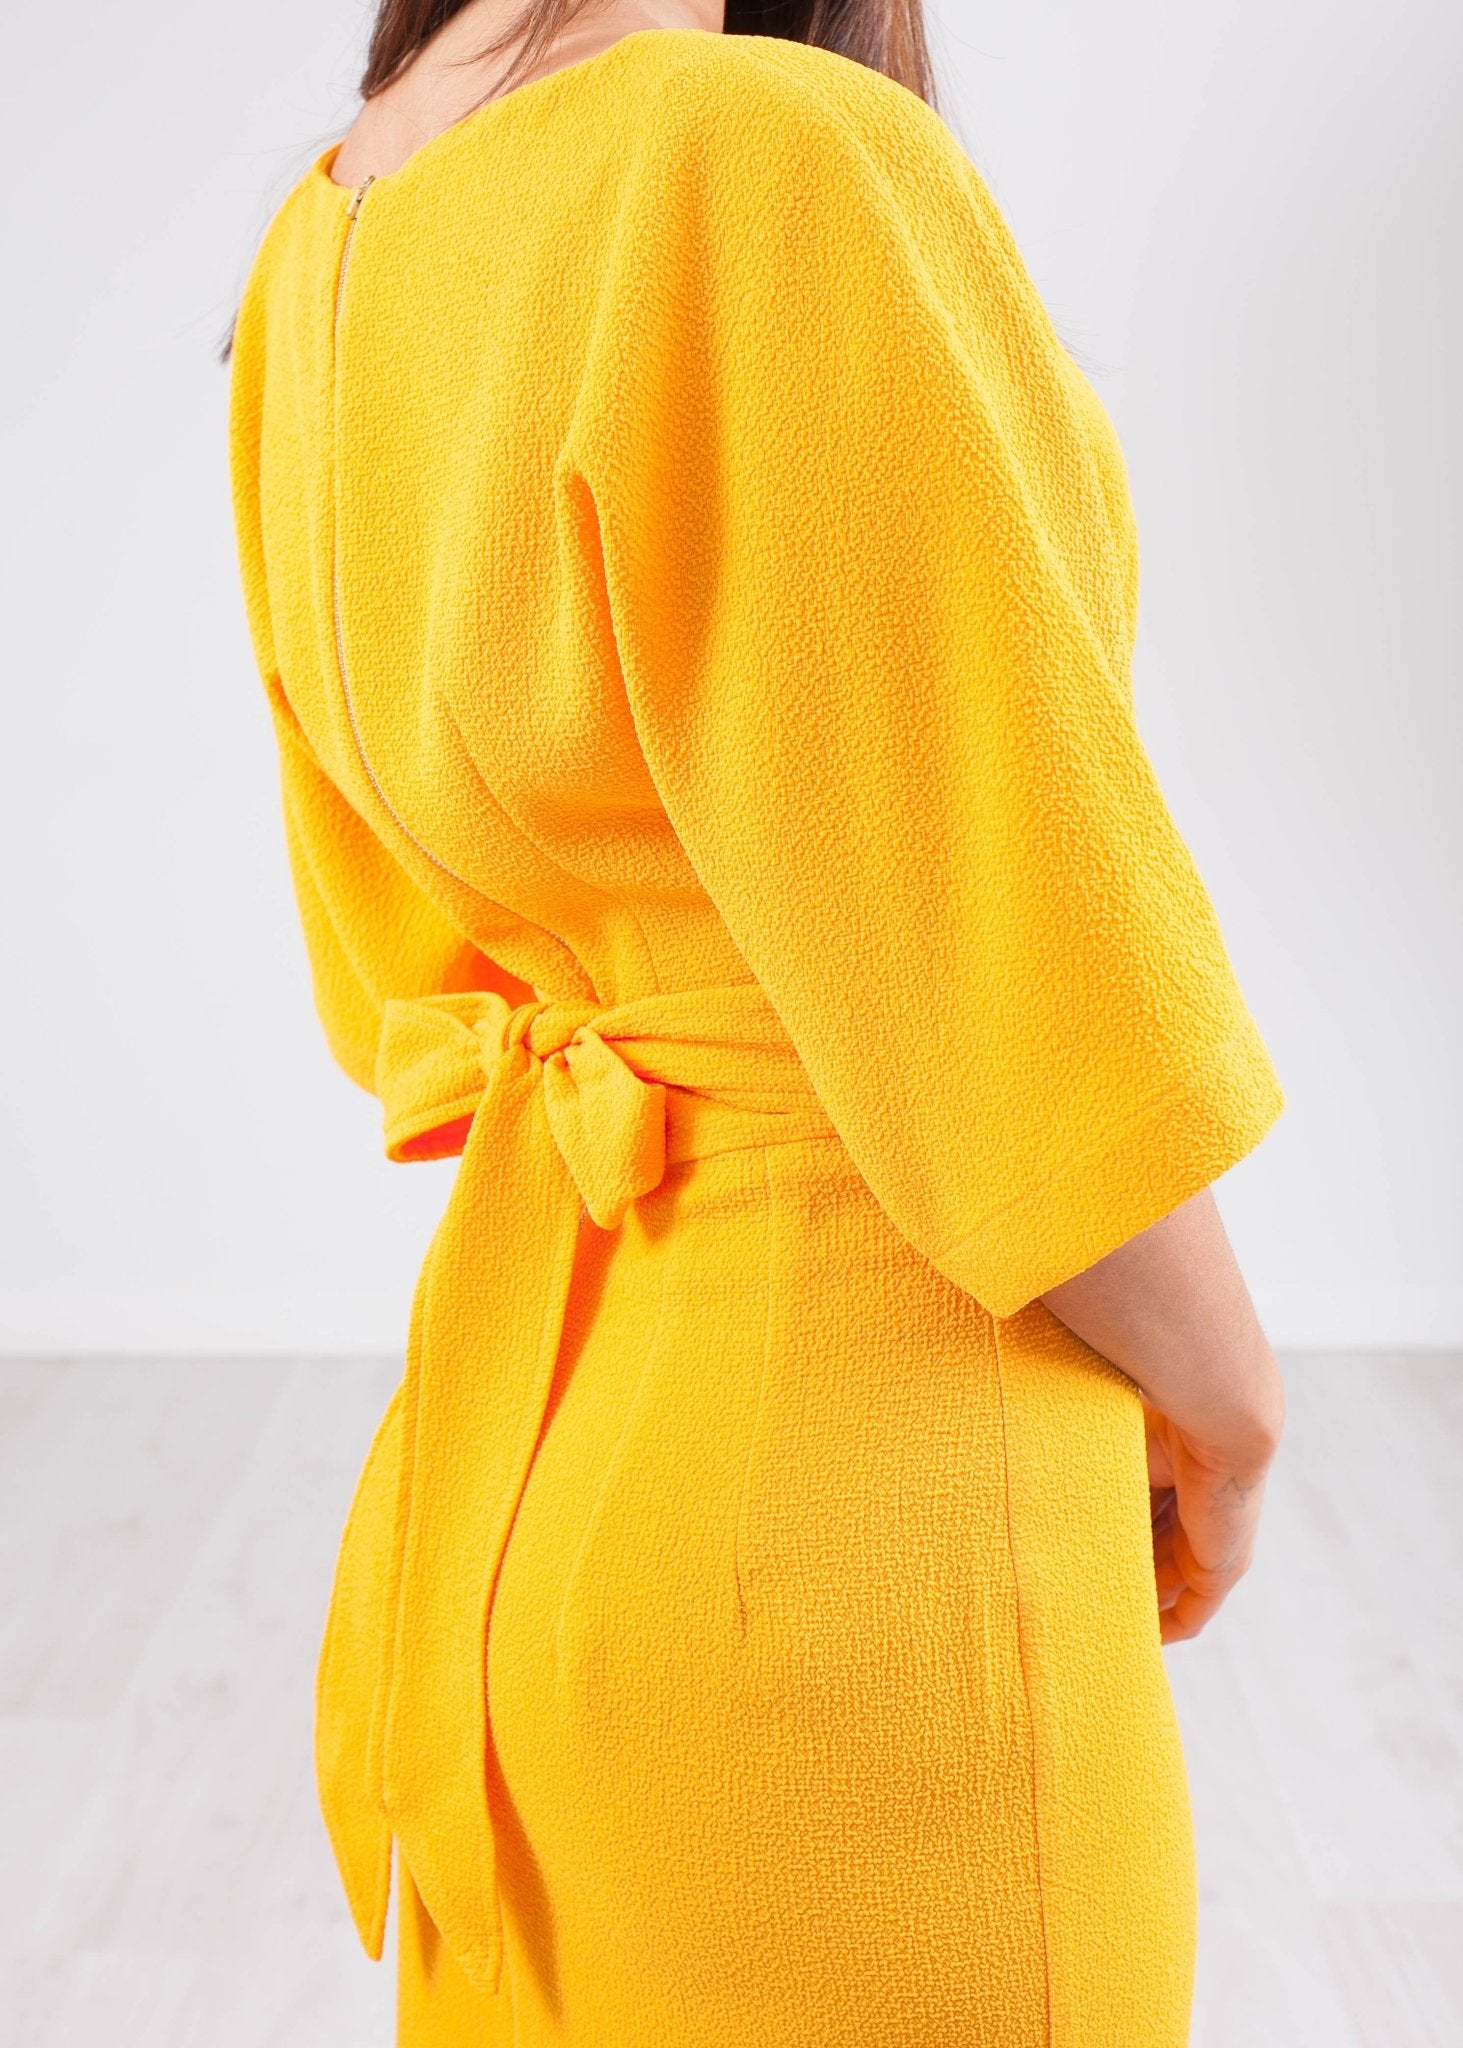 Cara Yellow Kimono Dress - The Walk in Wardrobe